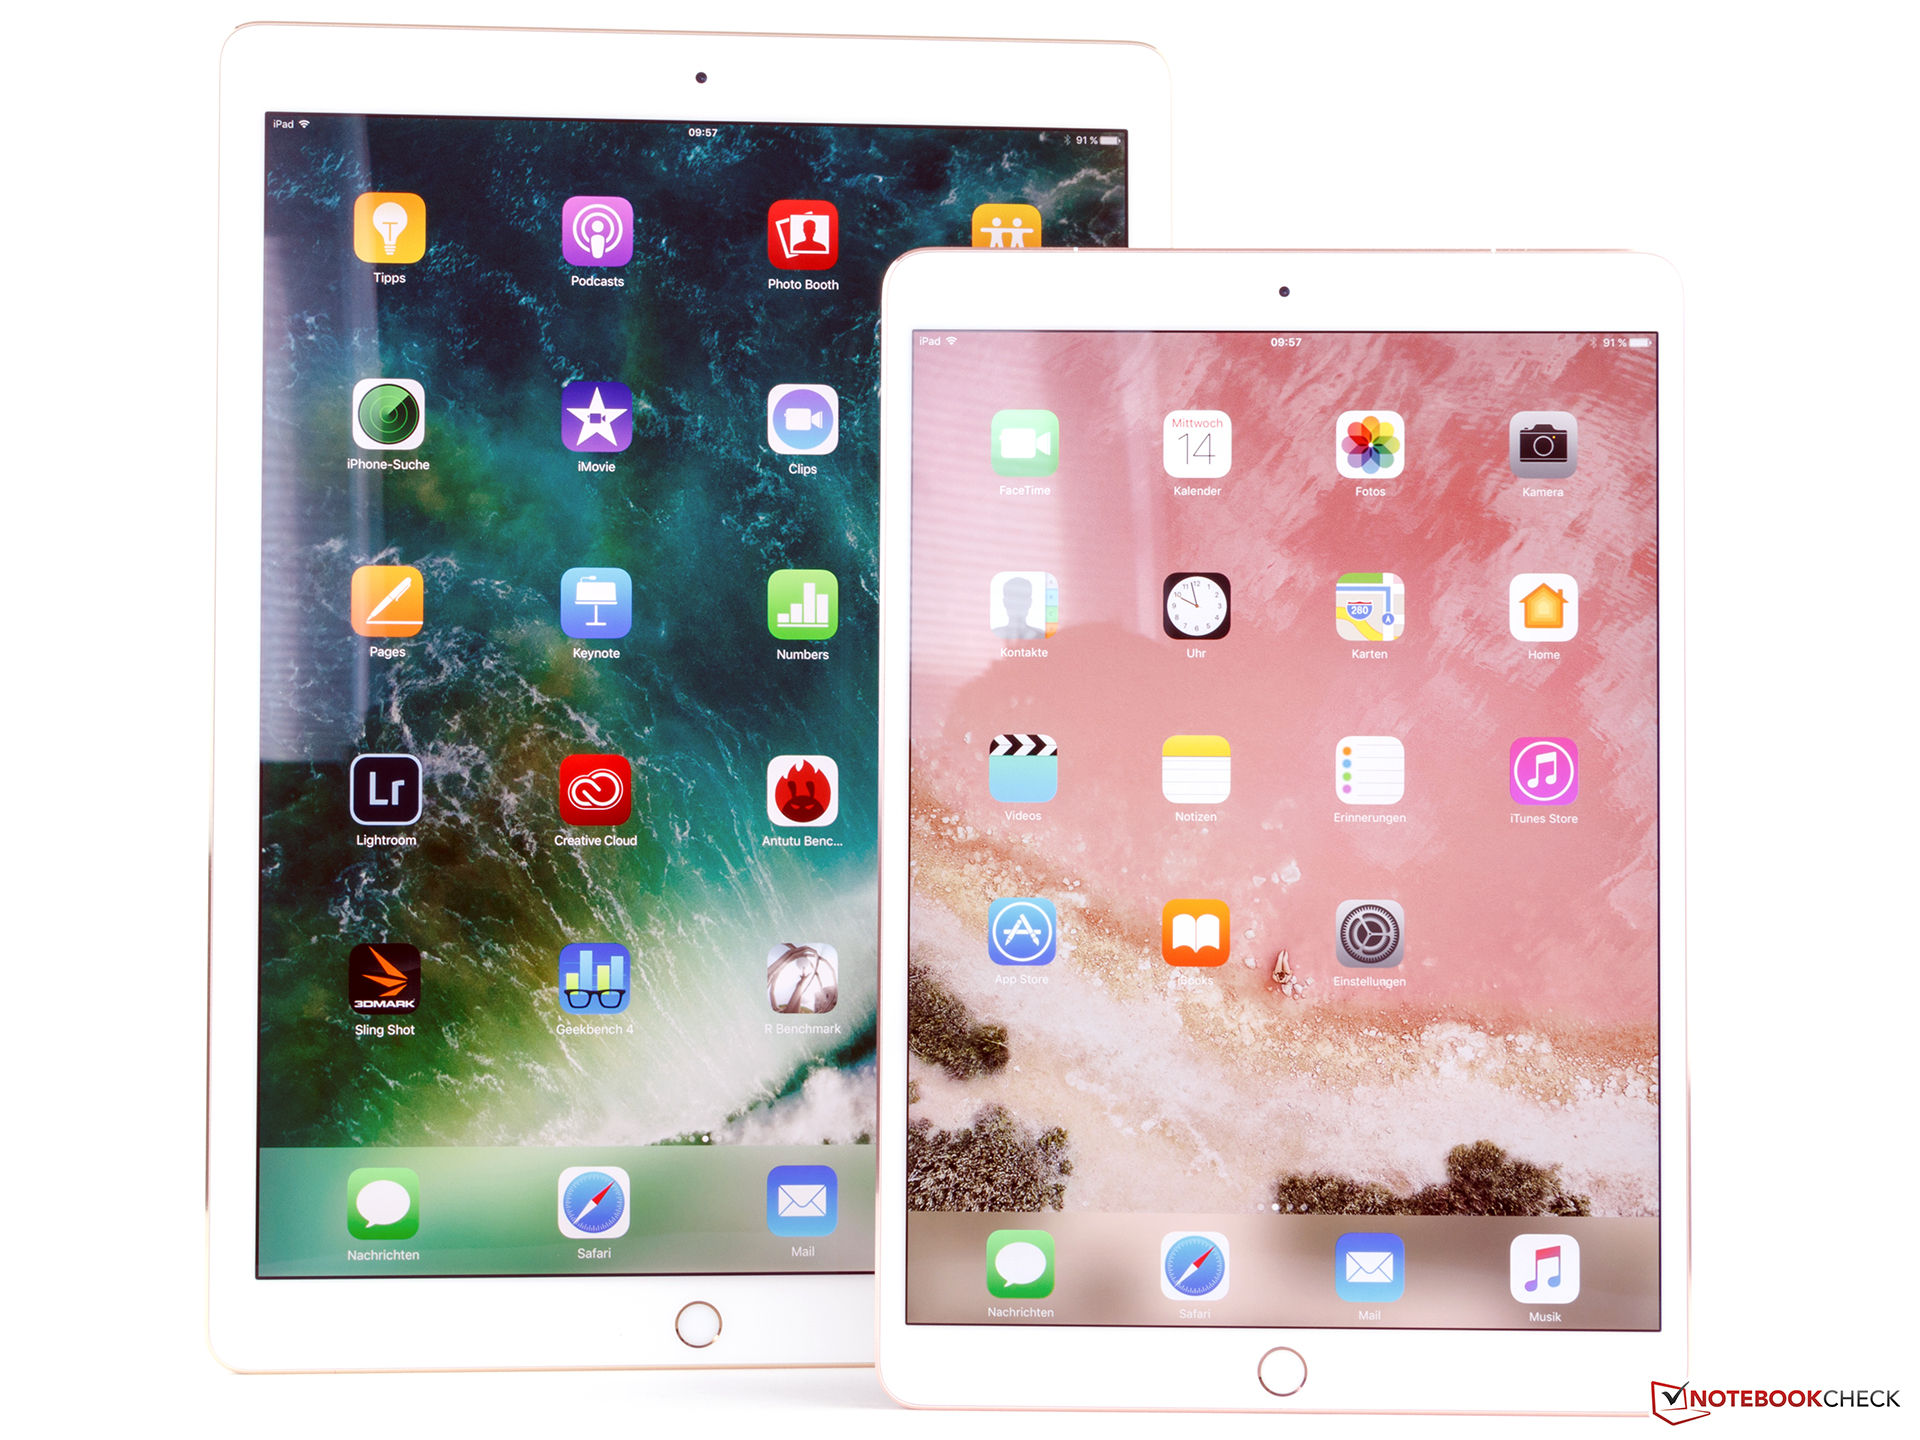 Apple iPad Pro 10.5 (front) and Apple iPad 12.9 (2017) full resolution